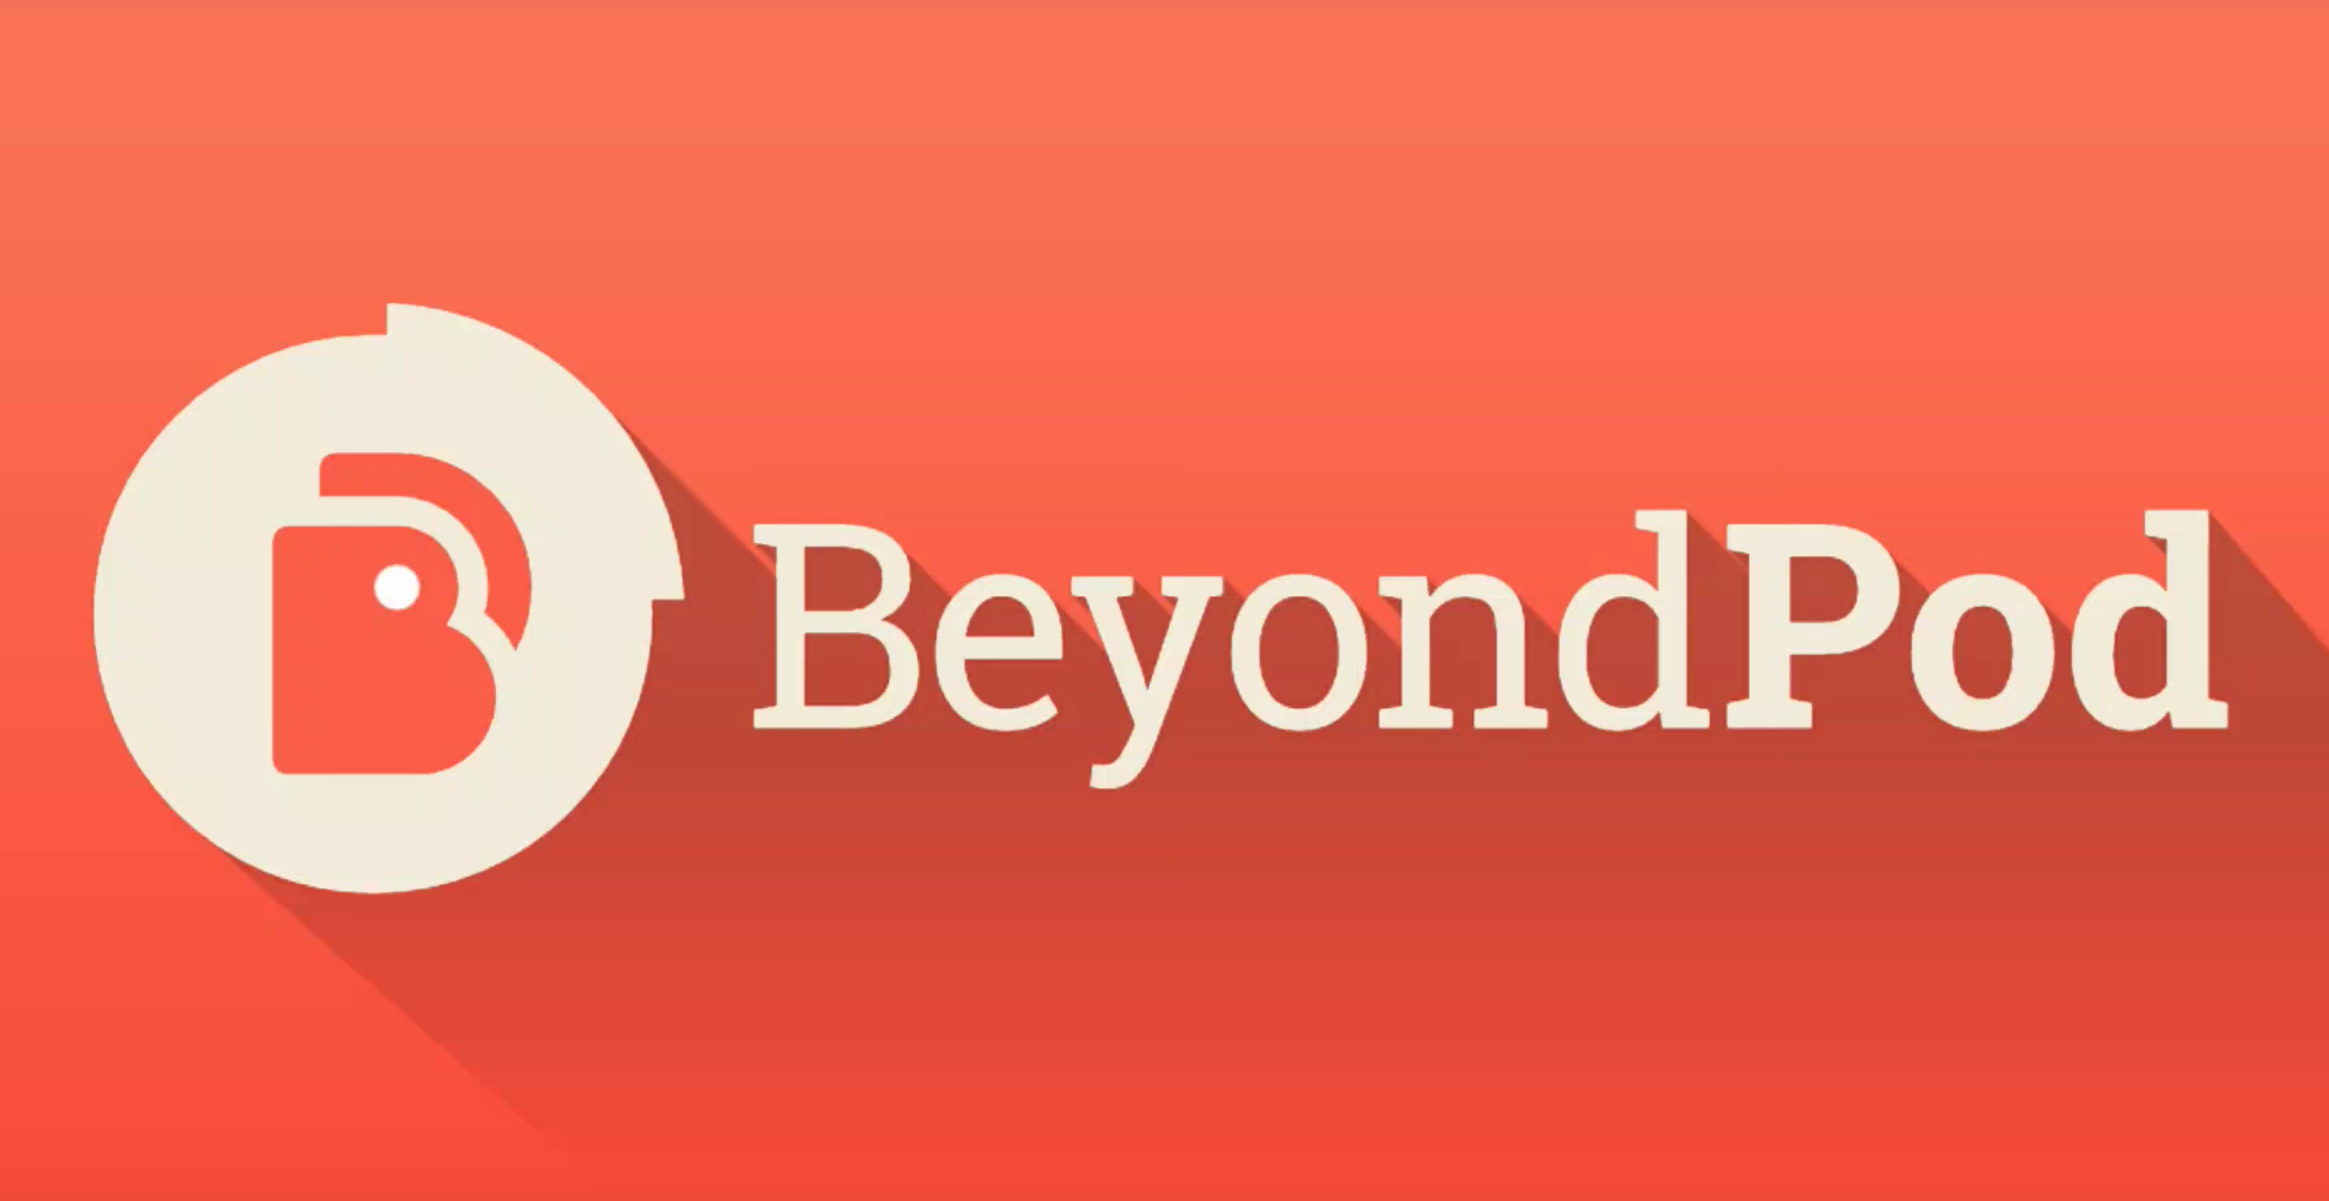 Beyondpod Has Been Removed From Android Auto But A Fix Is In The Works